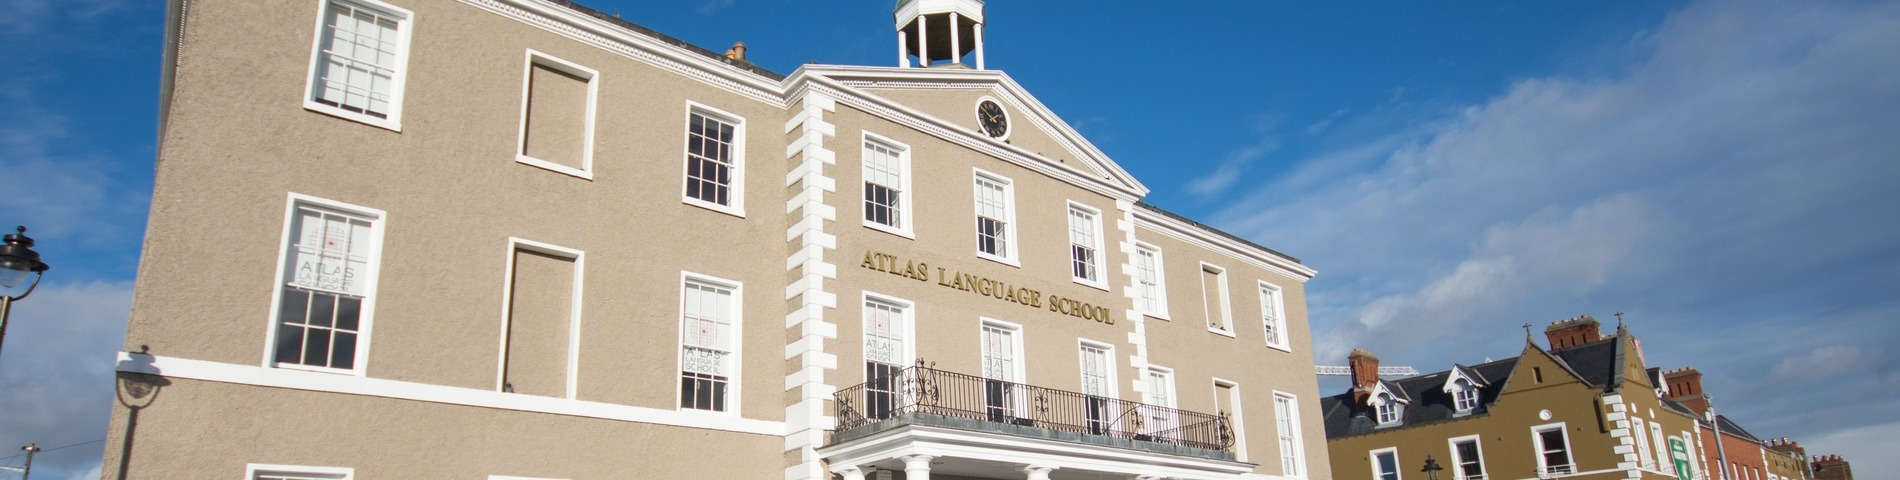 Atlas Language School picture 29